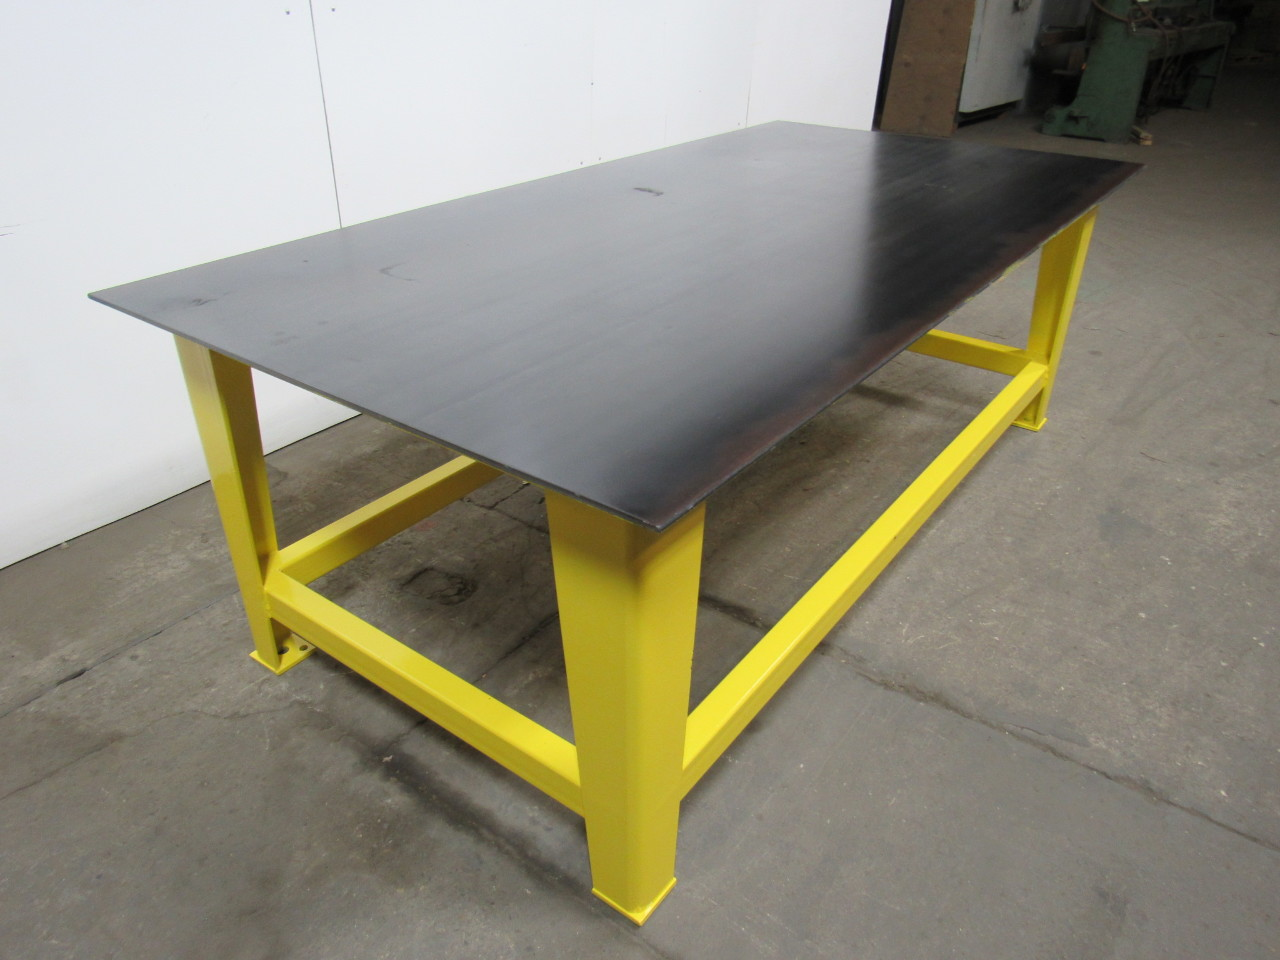 Steel Welding Work Bench Assembly Layout Table 96 X 48 3 8 Thick Top